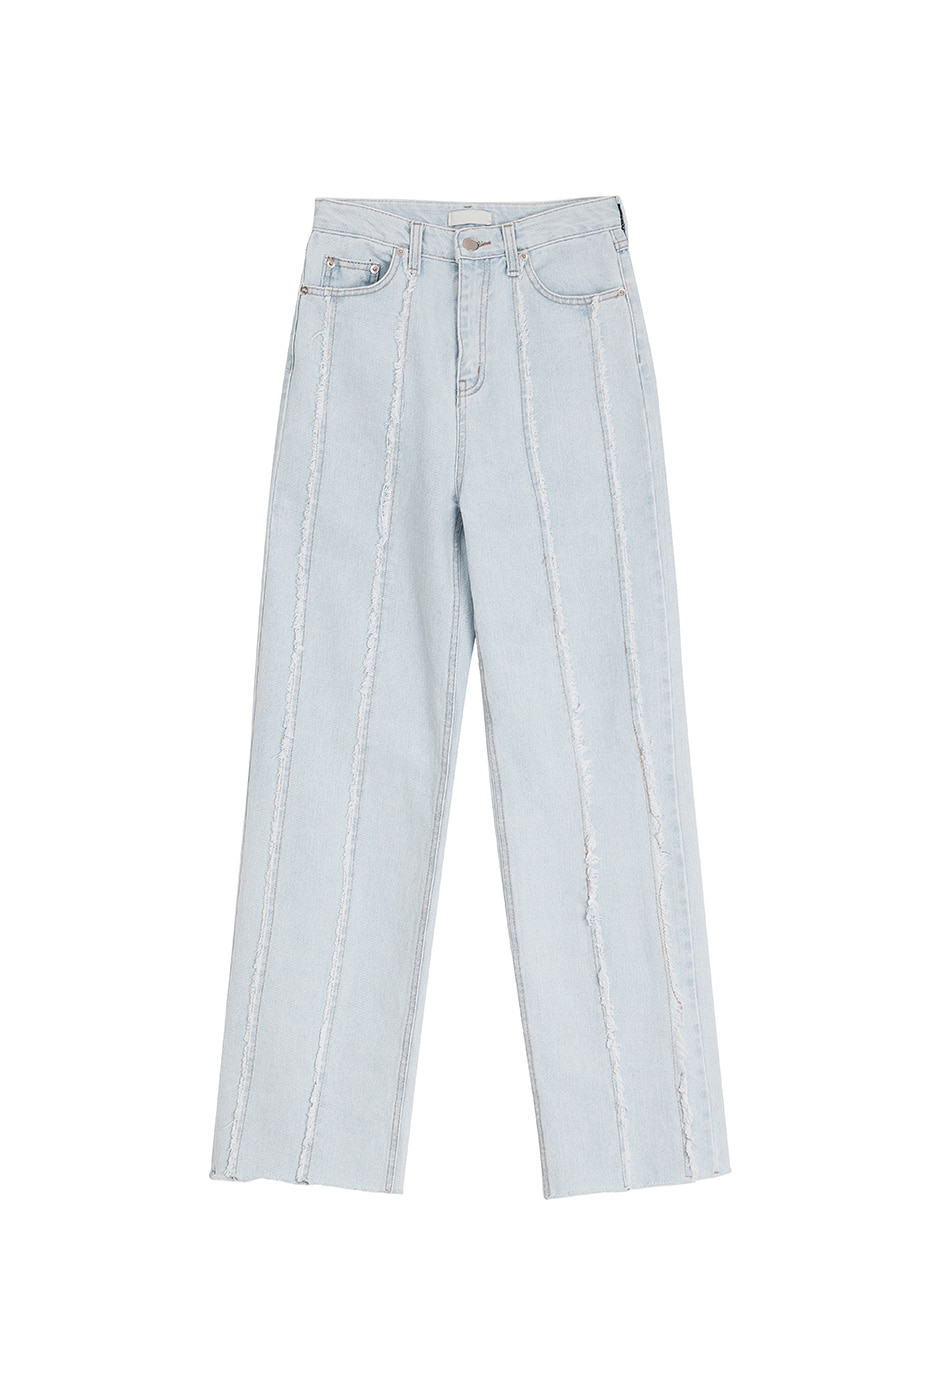 Cut fringe ice straight jeans